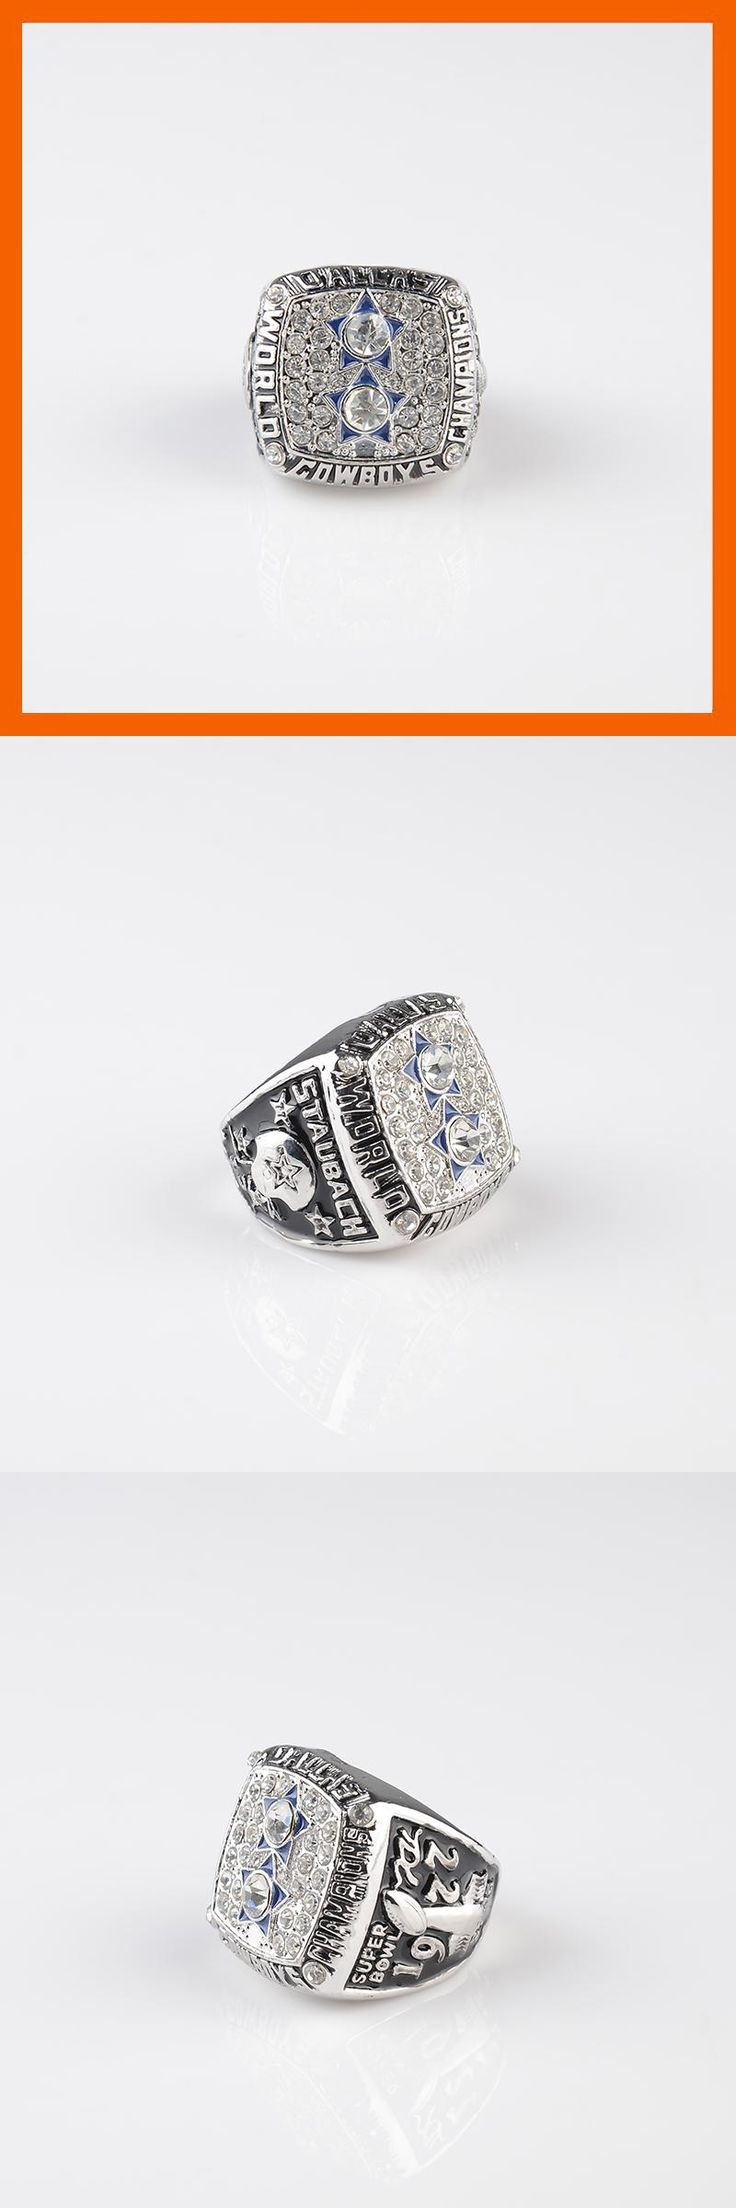 [Visit to Buy] 1977 DALLAS COWBOYS SUPER BOWL XII WORLD CHAMPIONSHIP RING US SIZE 8 9 10 11 12 13 14 AVAILABLE #Advertisement